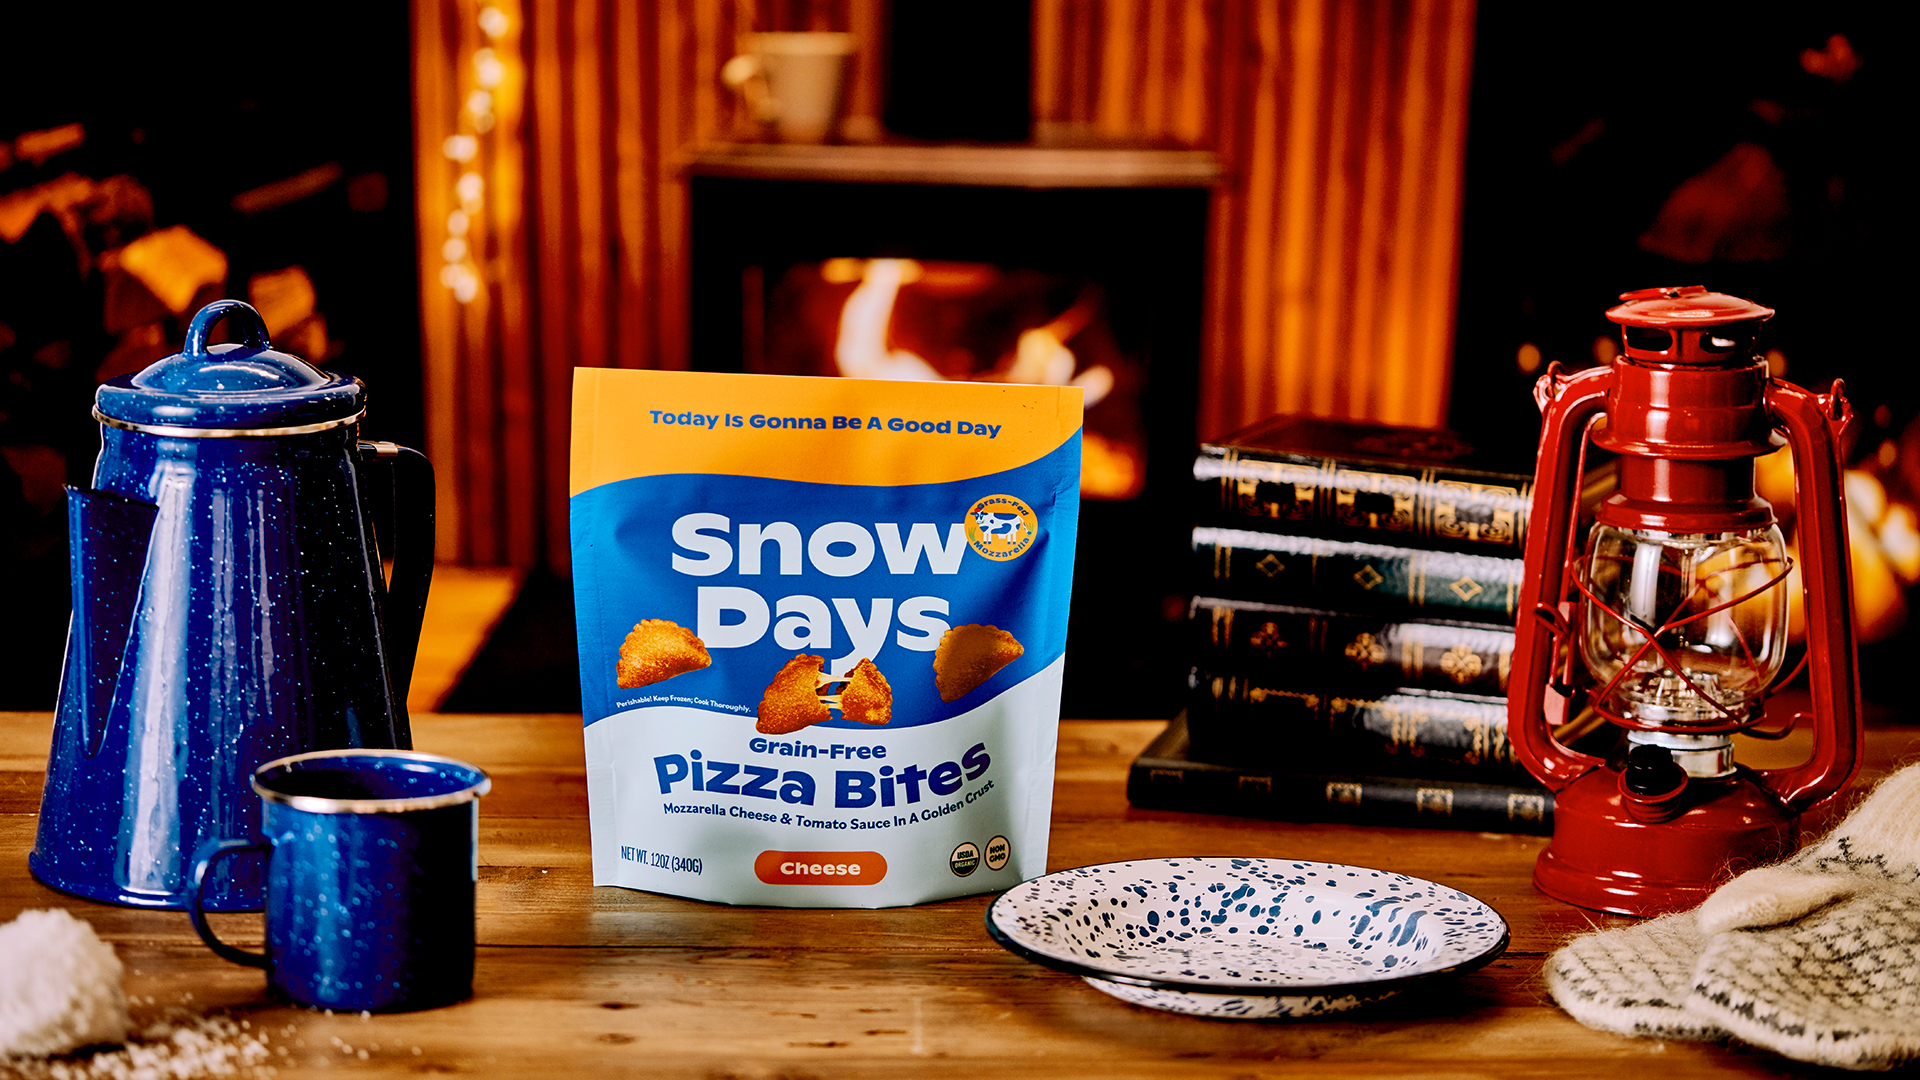 Snow-Days-22-Product-Hero